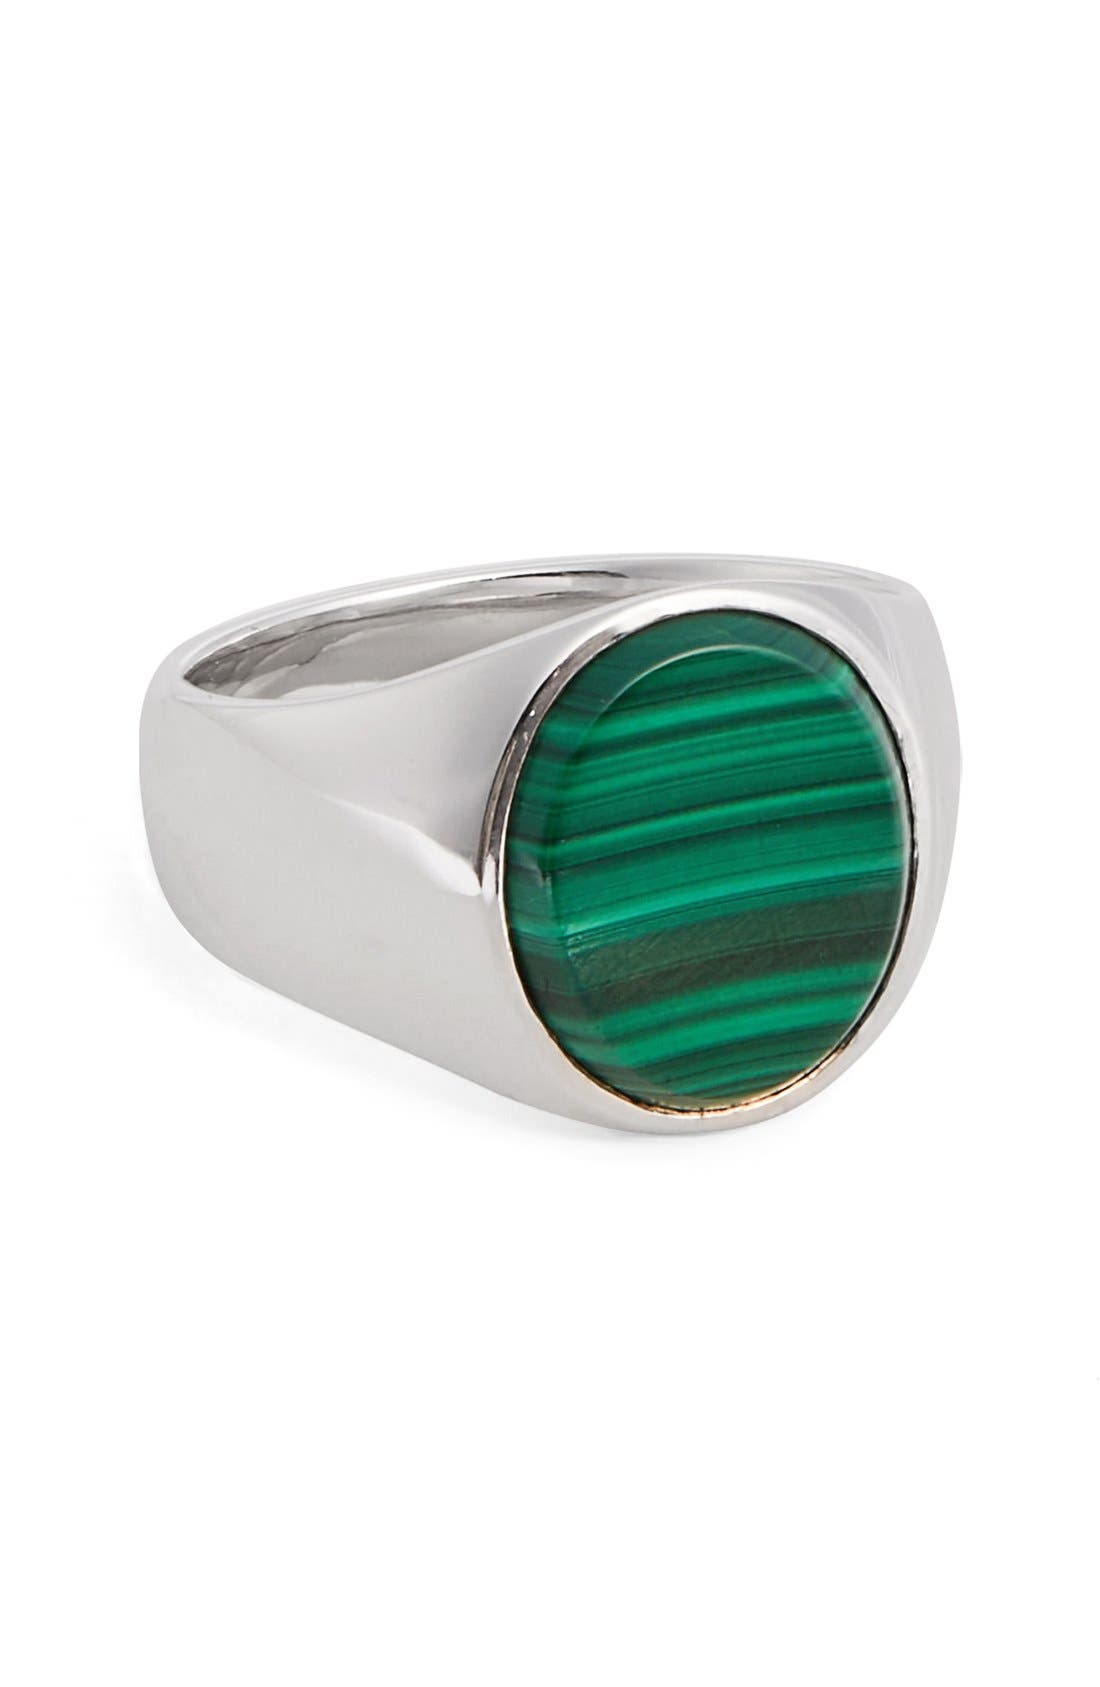 Main Image - Tom Wood 'Patriot Collection' Oval Malachite Signet Ring